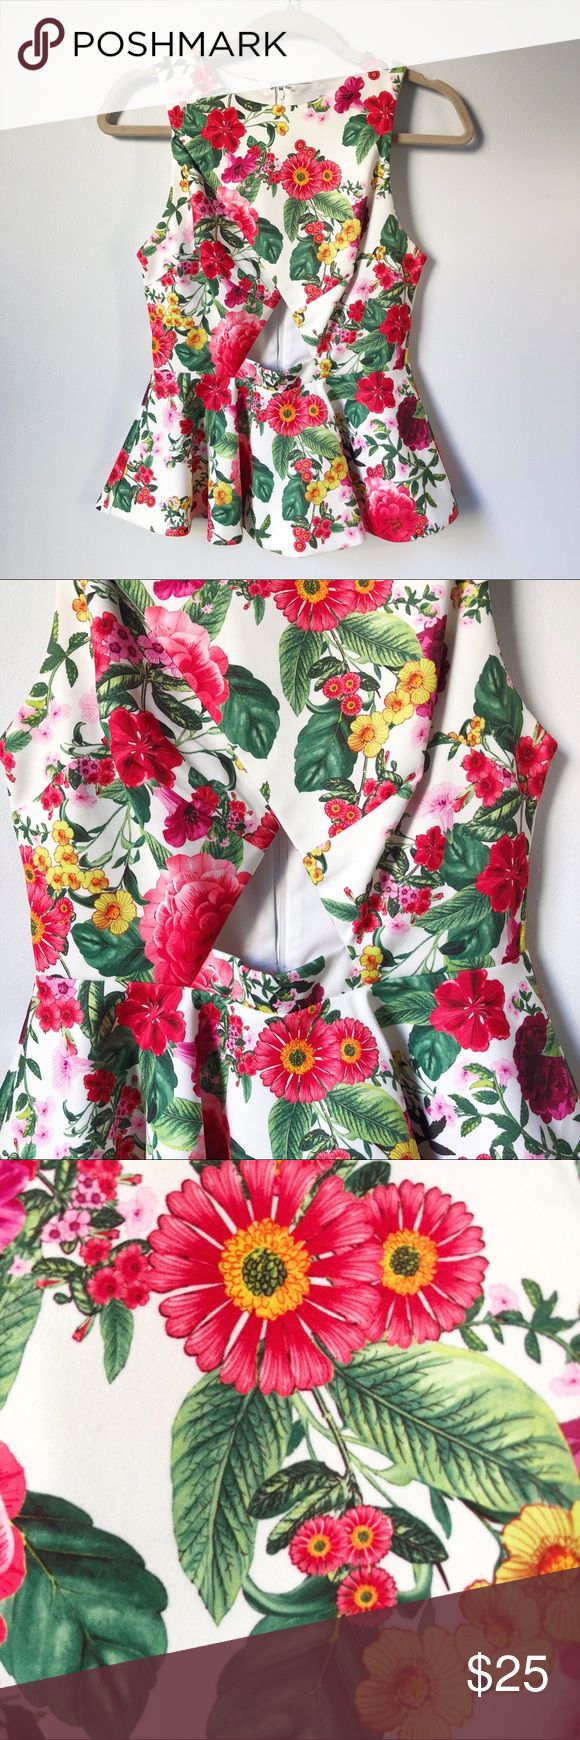 ASOS Red Floral Peek-A-Boo Cut Out Peplum Top This fun peplum features red florals, hints of yellow, pink and green, and a cutout that takes the look from ordinary to extraordinary. Great for spring and summer!   20.5 inches long  ***Buy with matching bottom for the complete look*** Bundle deal on any 3 items when you shop from my closet. ASOS Tops Blouses